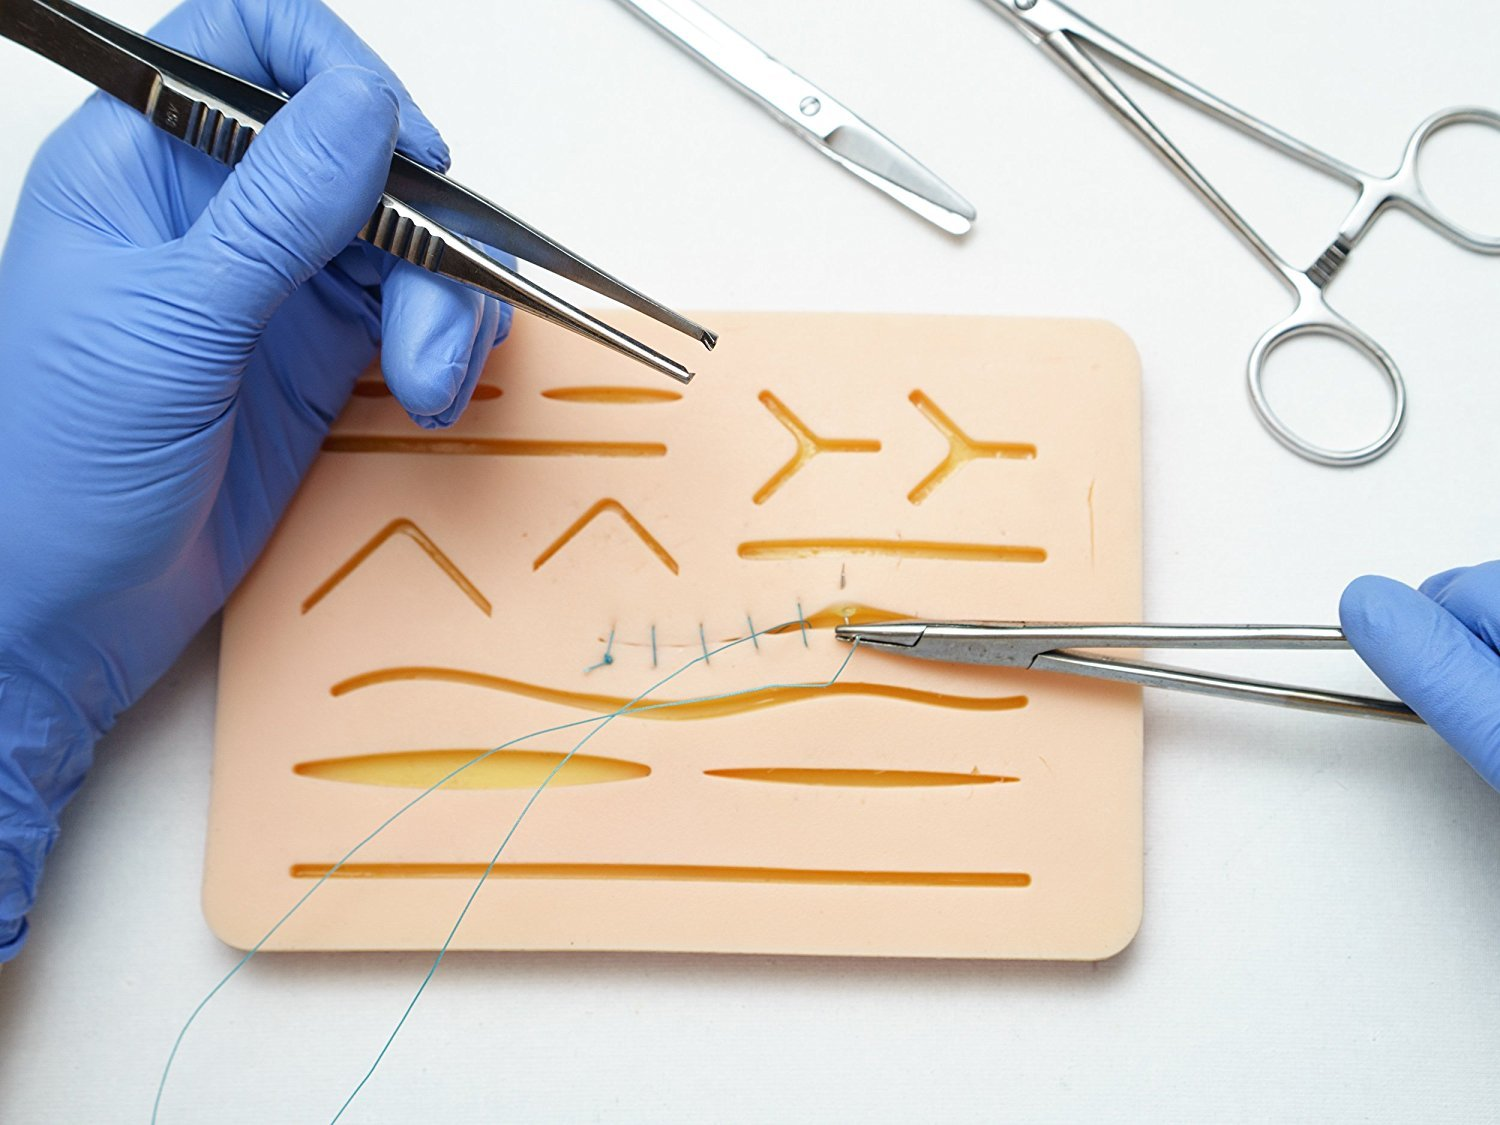 Kenley Suture Pad - Suture Kit for Medical Training & Practice Suturing - 3 Layers Replicate Human Skin, Fat & Muscle - 11 Incisions & Wounds - 7.25'' x 5.25'' - Ideal for Teaching Students Vet Doctors